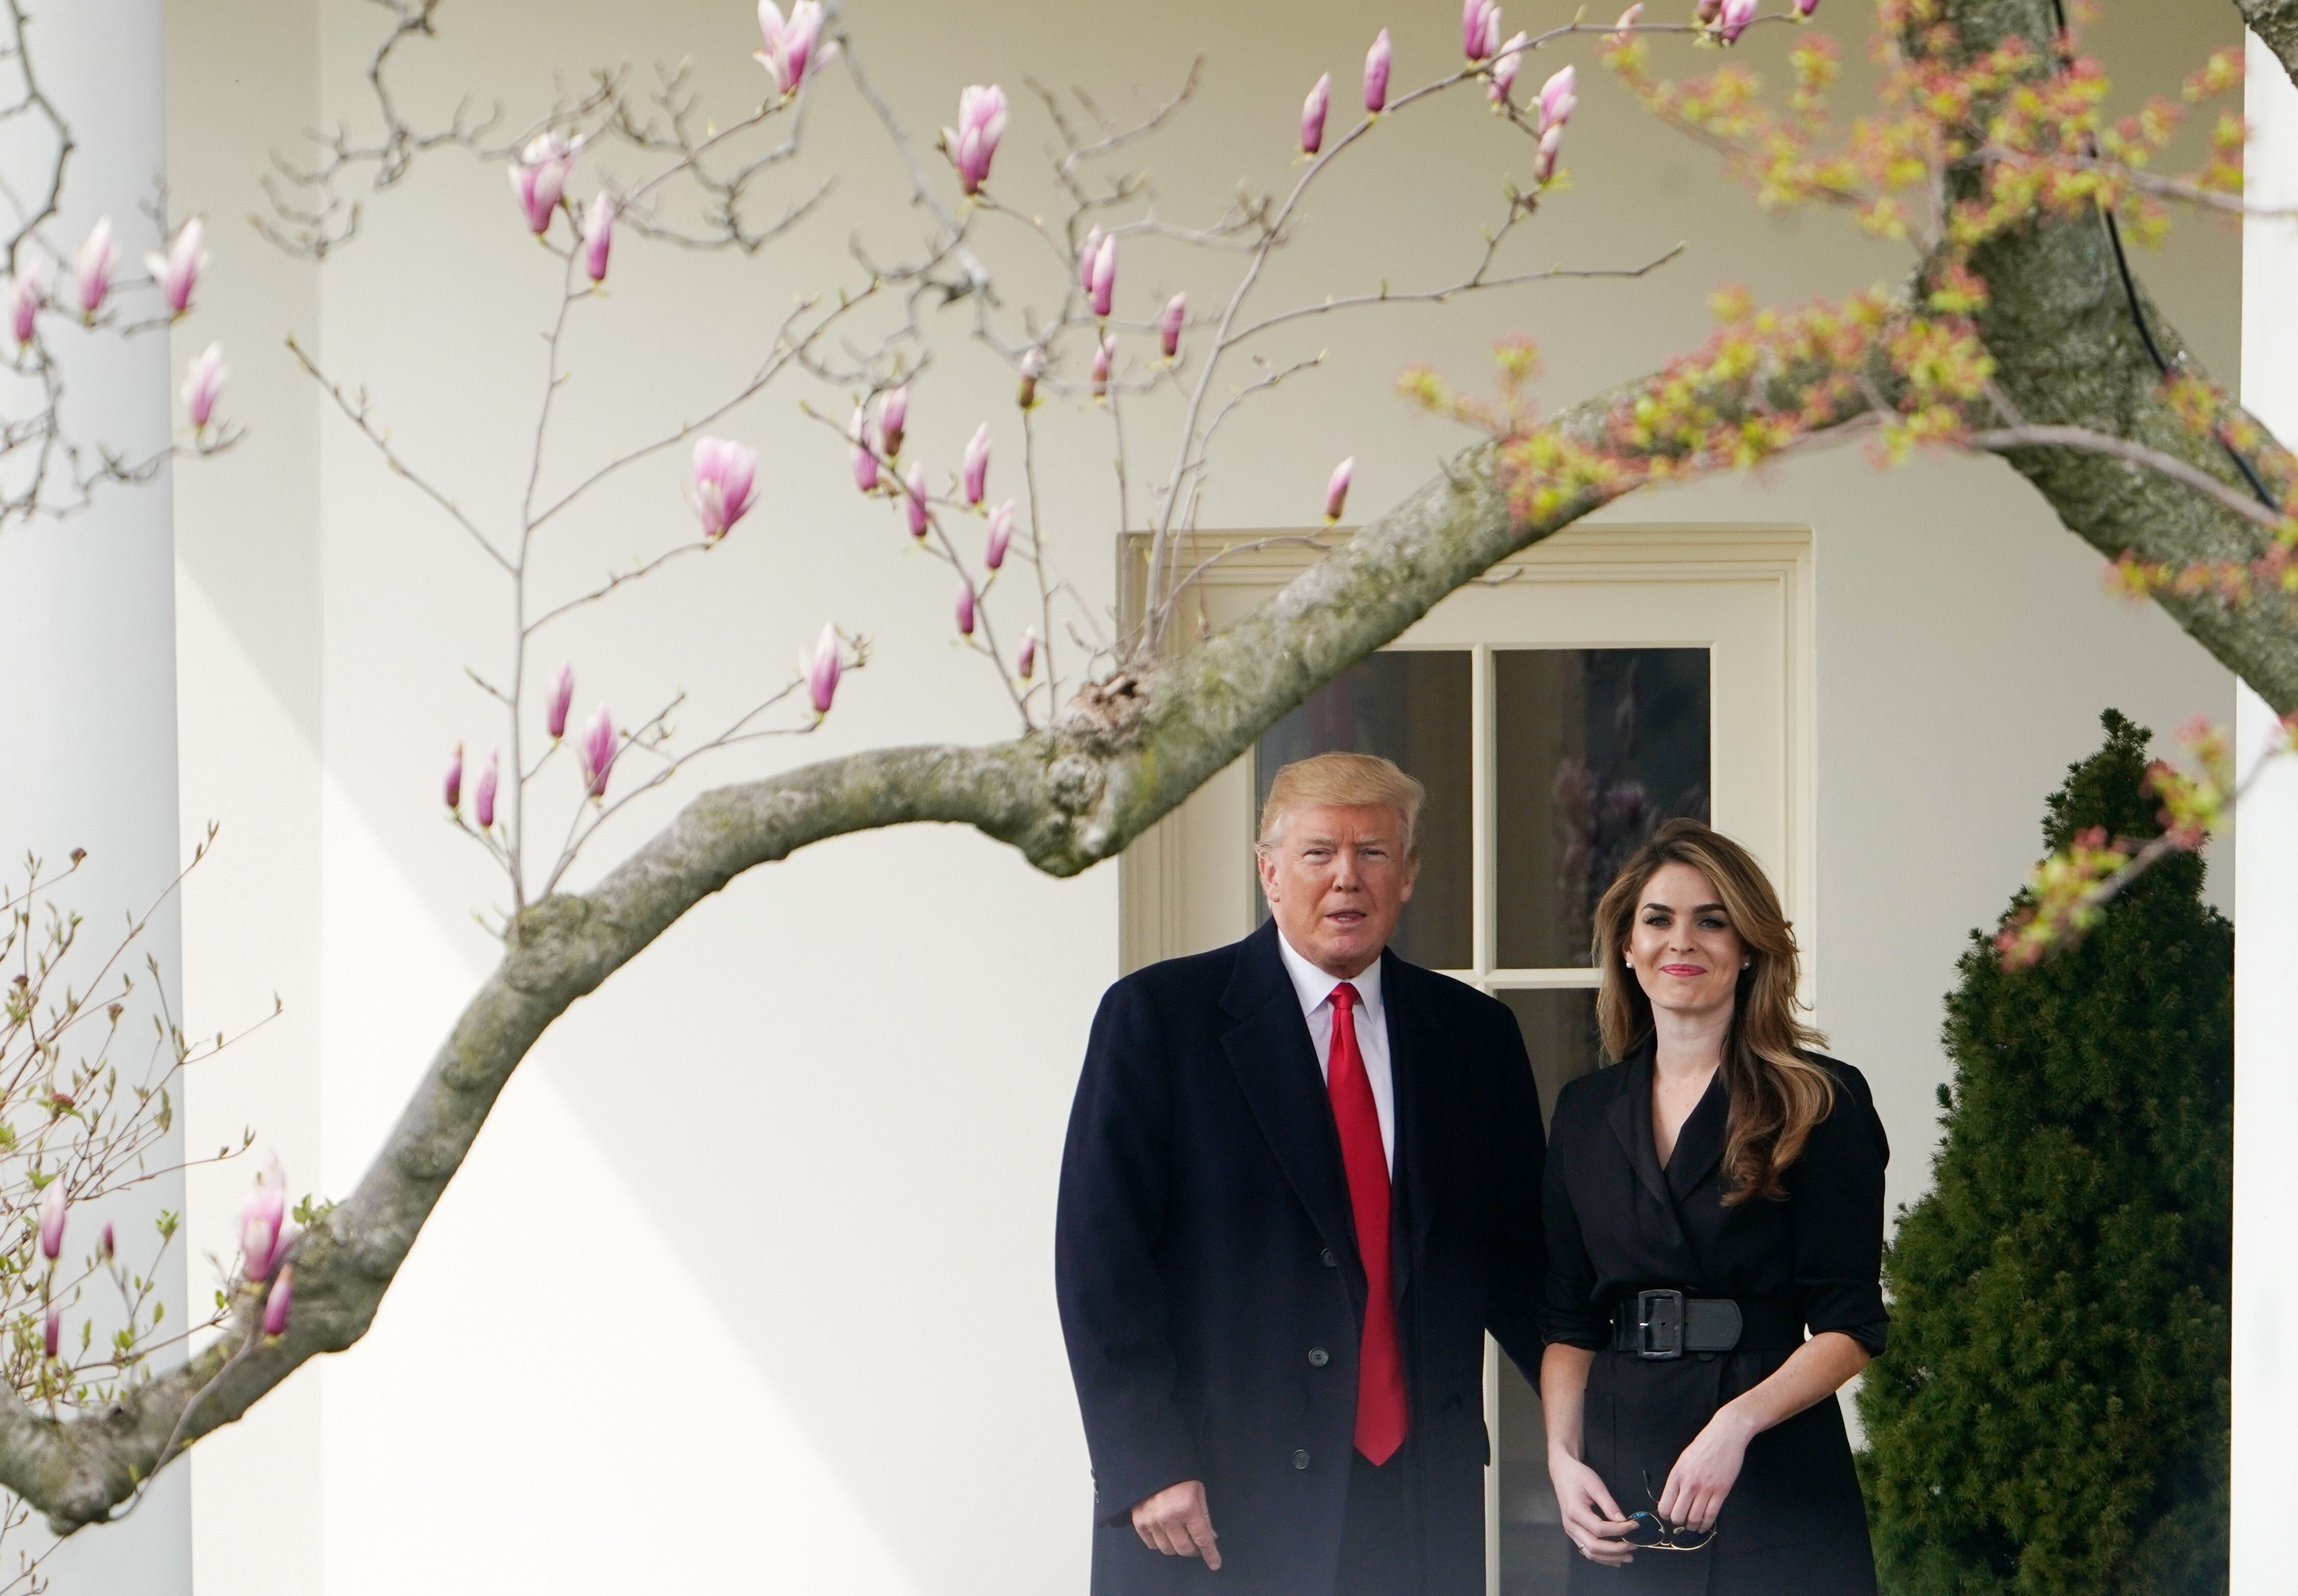 US President Donald Trump poses for a photo with former communications director Hope Hicks shortly before making his way to board Marine One on the South Lawn and departing from the White House in Washington, DC on March 29, 2018.  Trump is visiting Ohio to speak on infrastructure development before heading to Palm Beach, Florida.  / AFP PHOTO / Mandel NGAN        (Photo credit should read MANDEL NGAN/AFP/Getty Images)